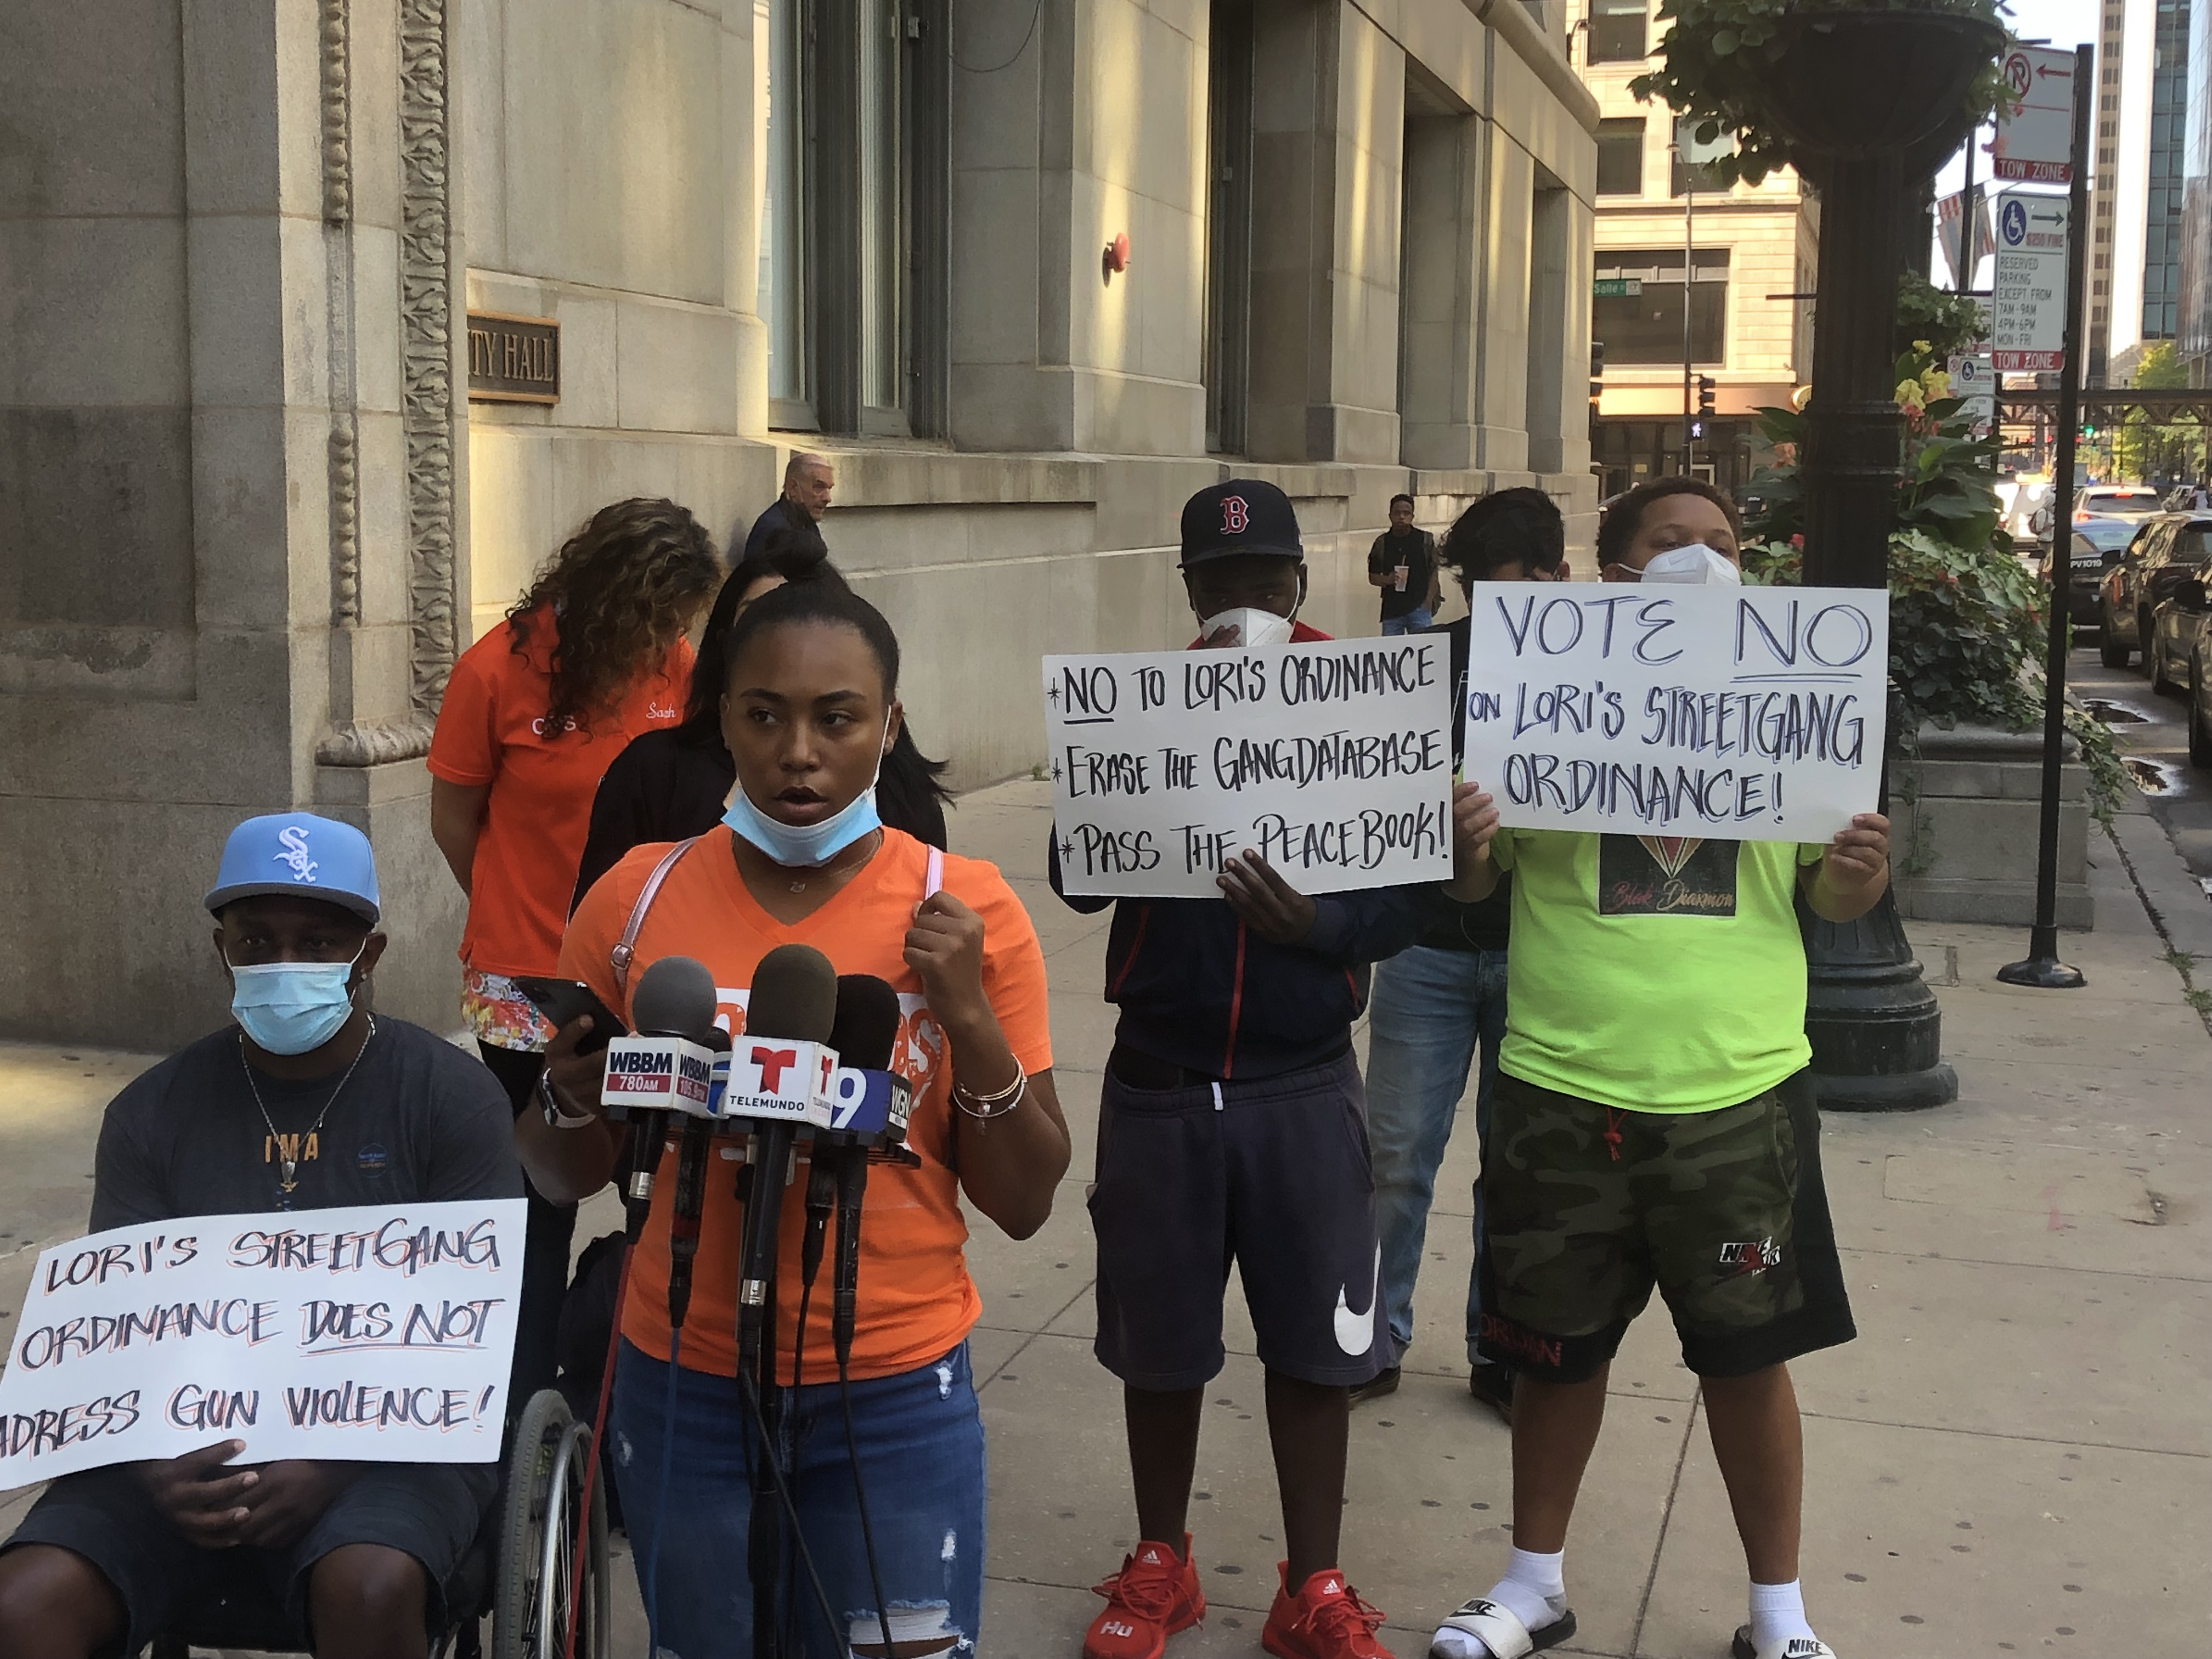 Miracle Boyd of Good Kids Mad City discusses her opposition to a proposed ordinance that would allow the city to sue gang members and seize their assets.